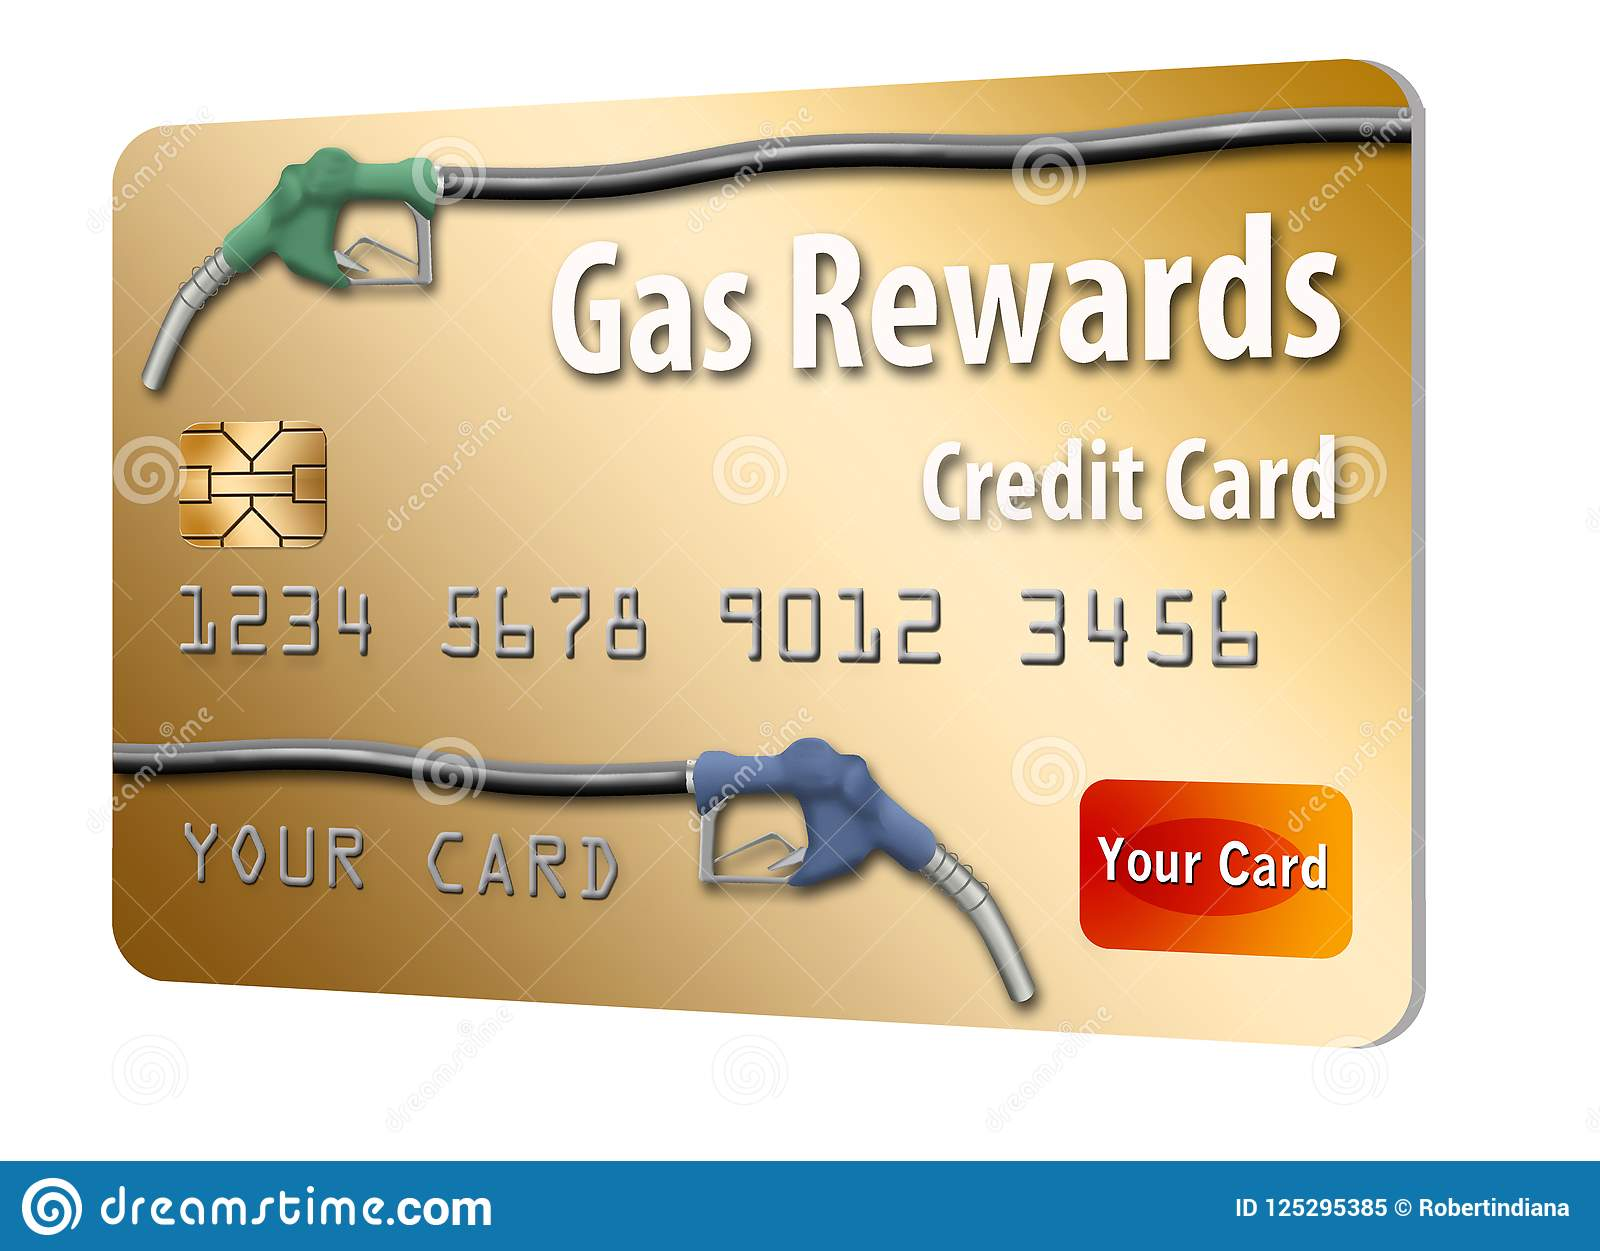 Gas Credit Card >> This Is A Generic Gasoline Rewards Credit Card Stock